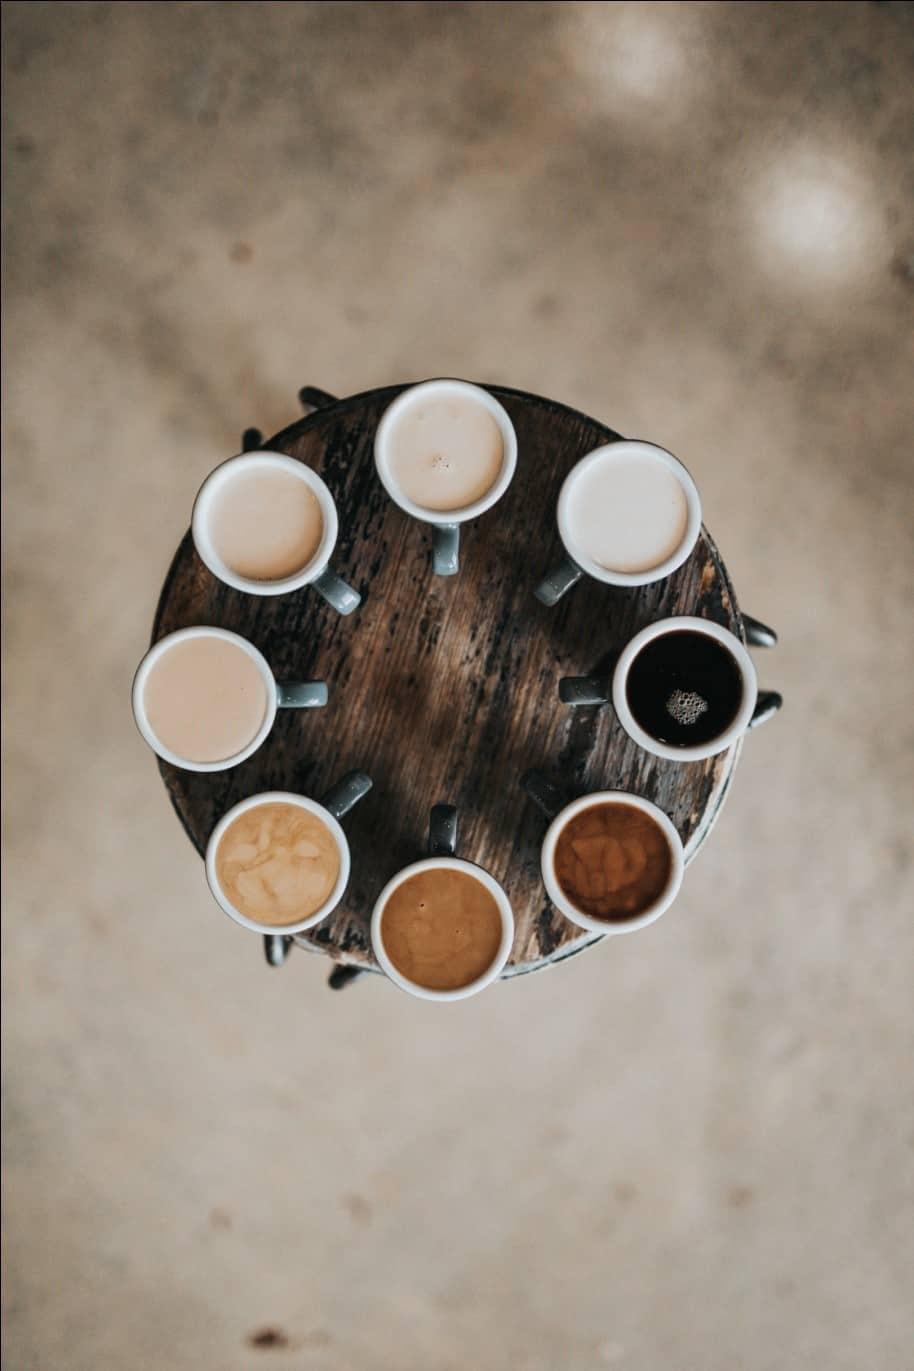 Different types of coffee made from the decaffeinated variety